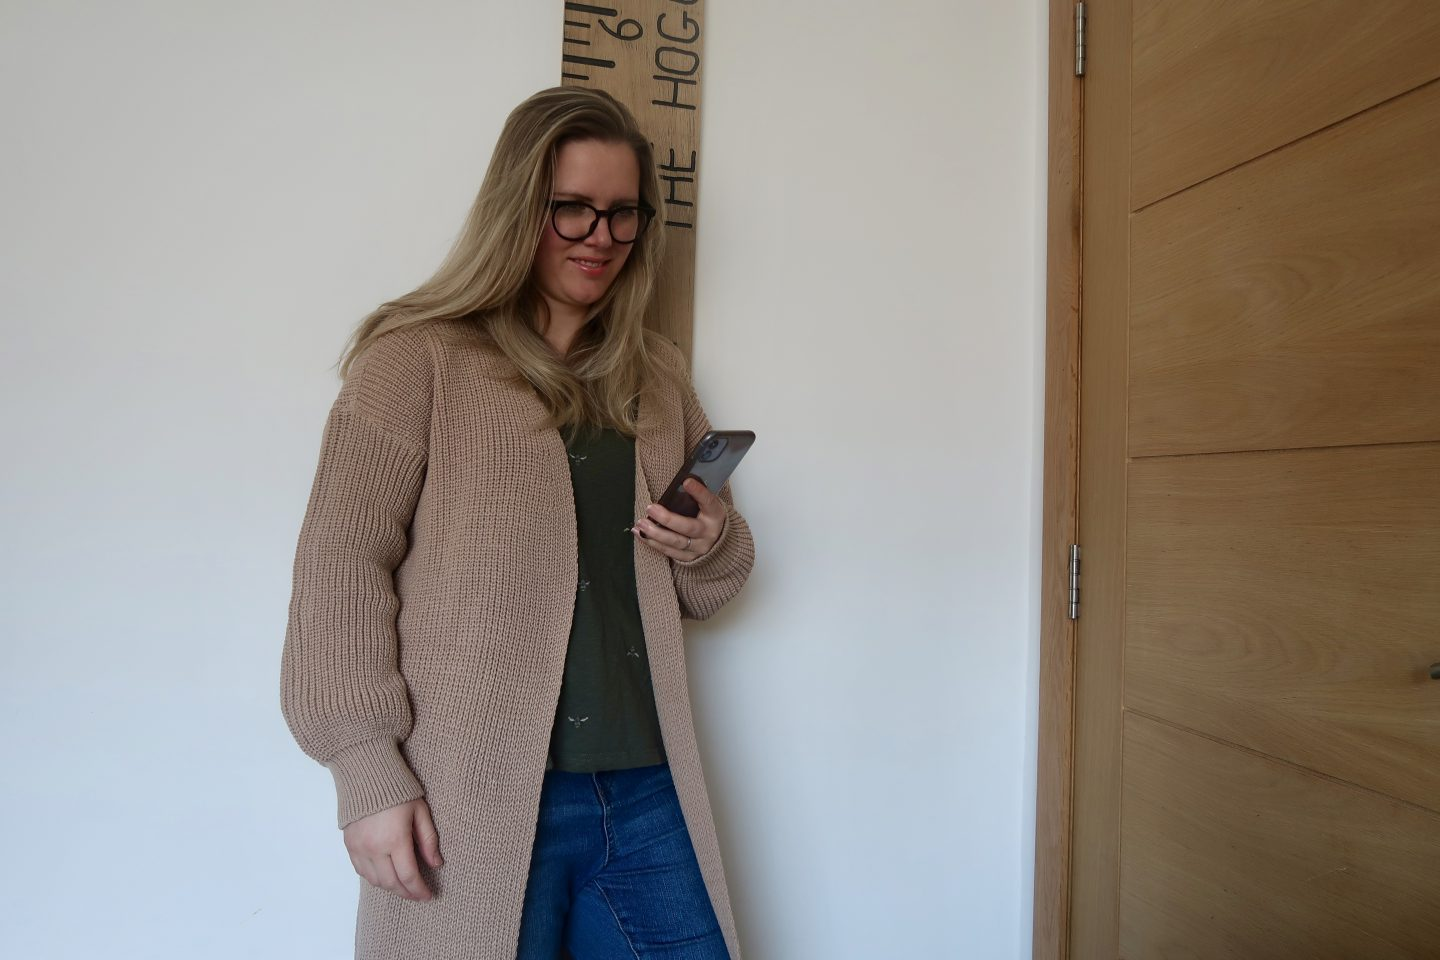 A woman leaning against a wall looking at her phone. She is wearing a tan coloured knitted cardigan and jeans.